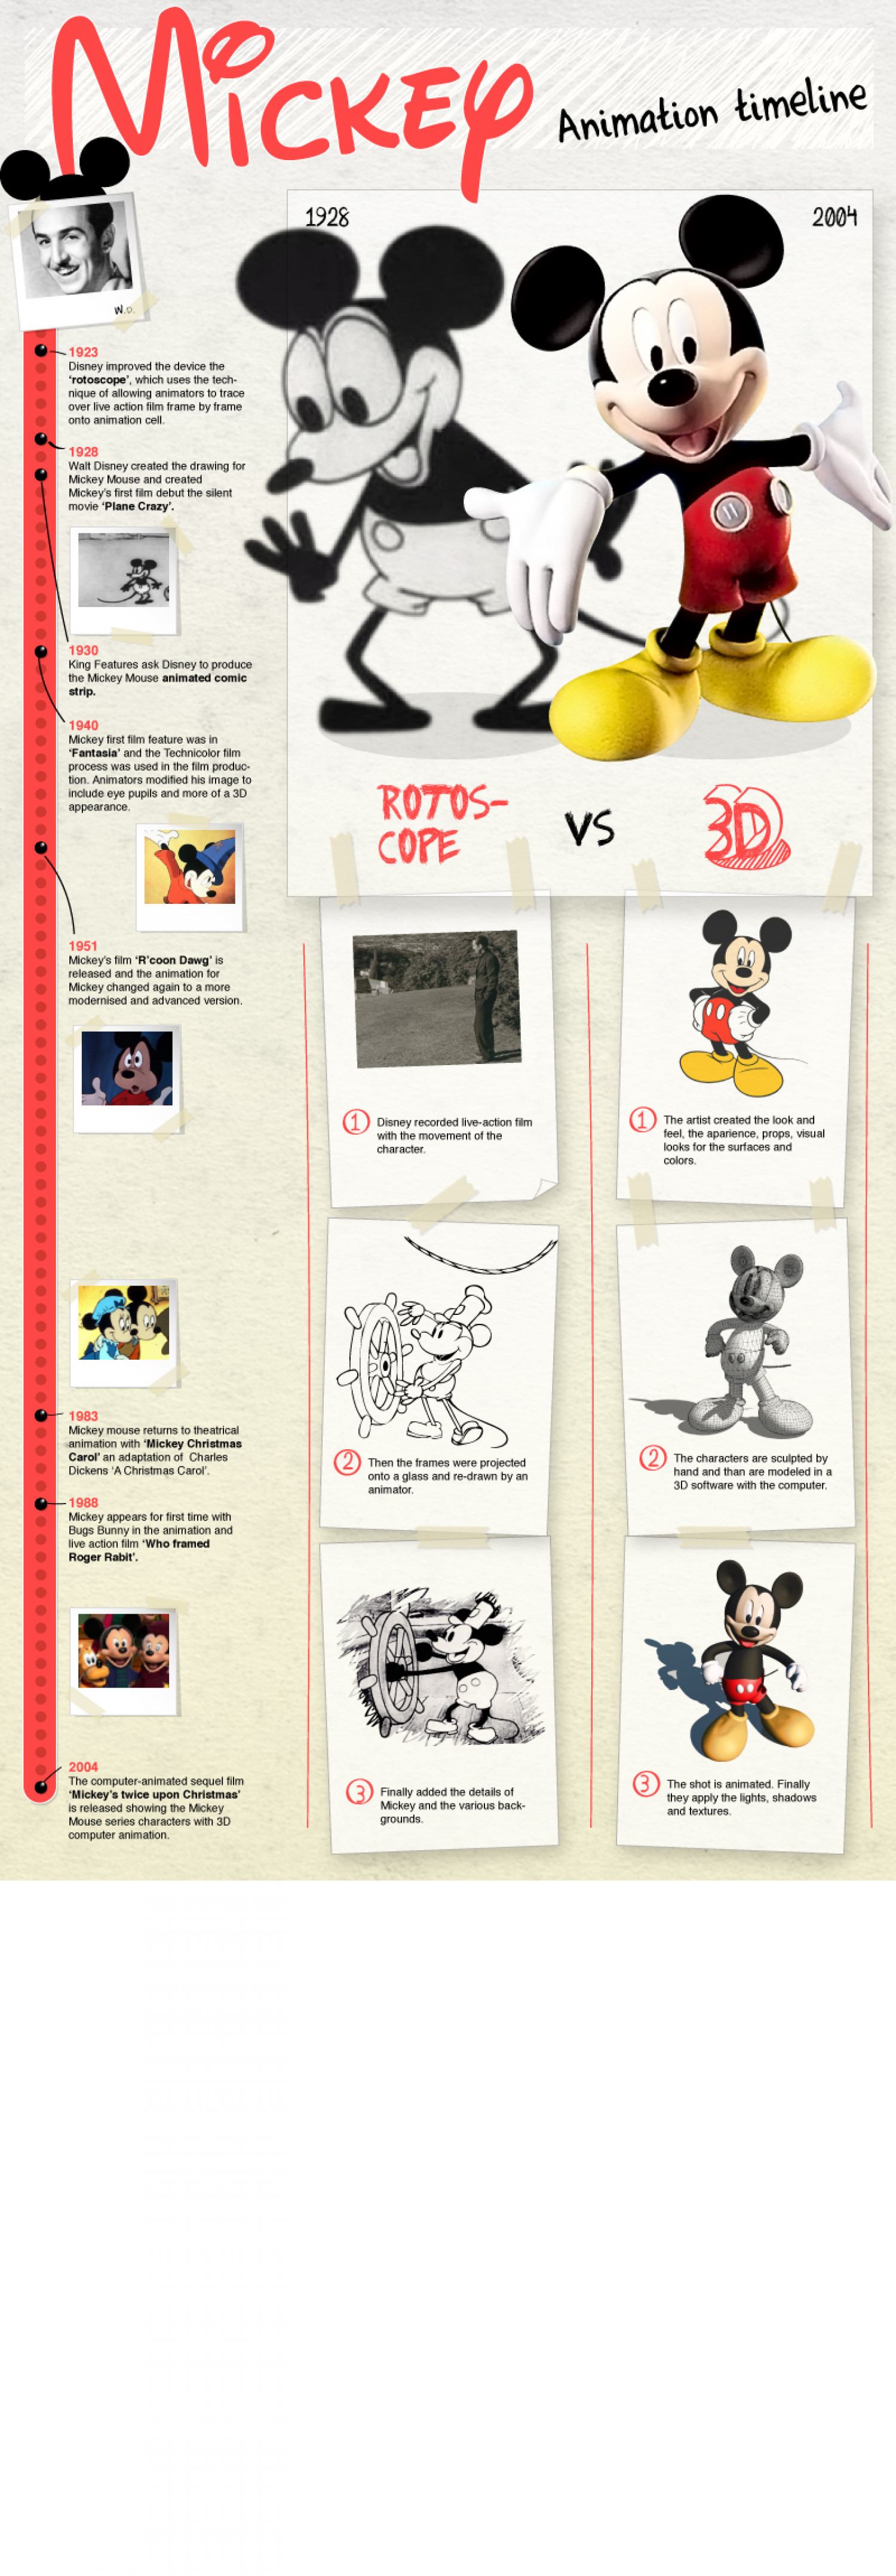 Mickey Mouse: The history of animation 3D Infographic